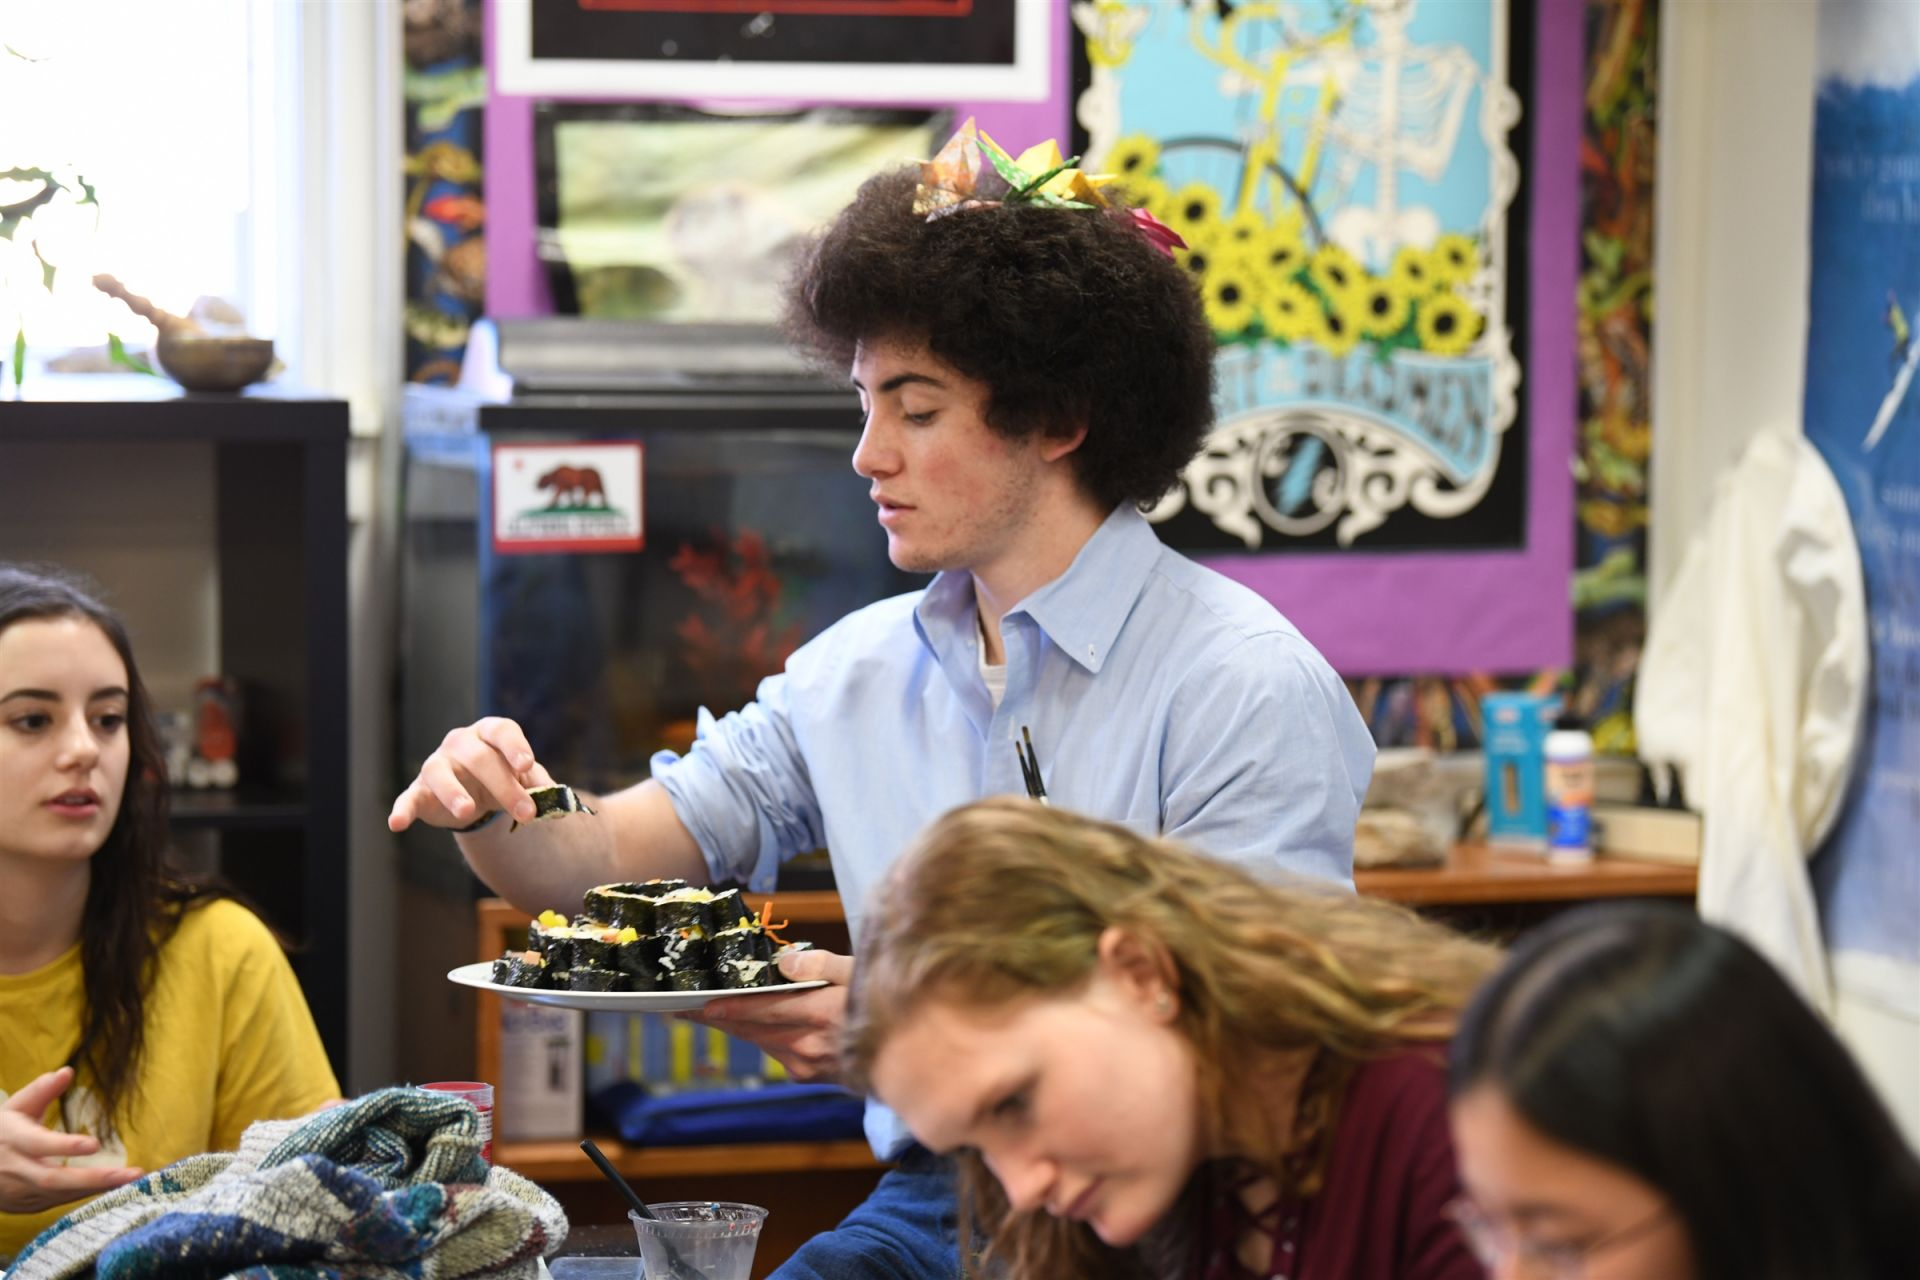 Benji W. '19 dives into some handmade Korean delicacies.